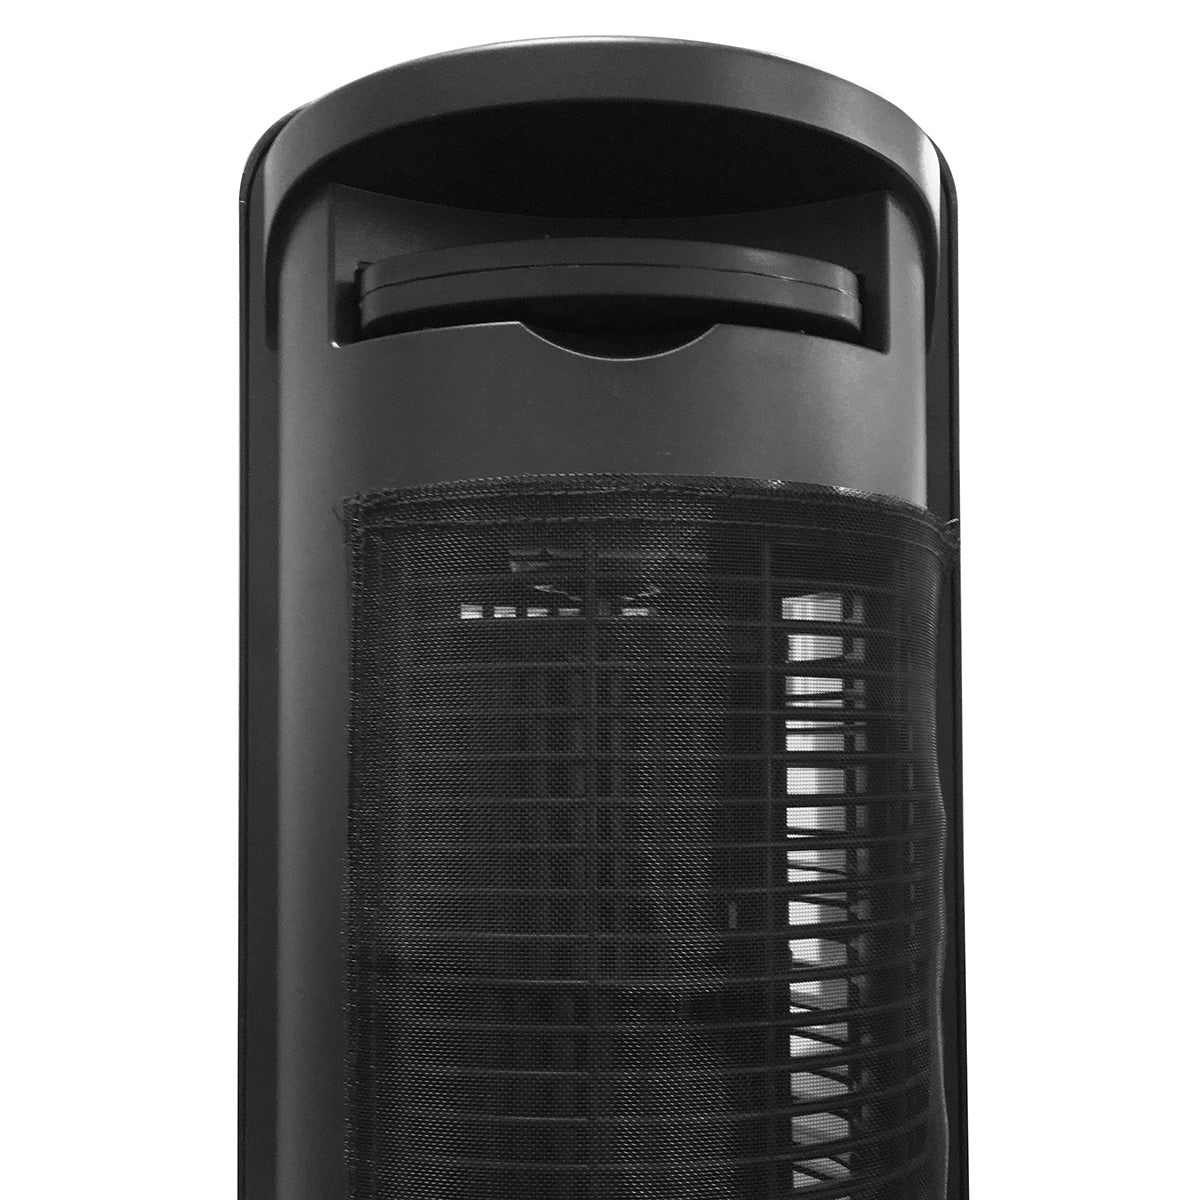 Pre-Filter Airvention DUSTAWAY Washable Dust Filter - Fits X02BR Tilting Oscillating Tower Fan